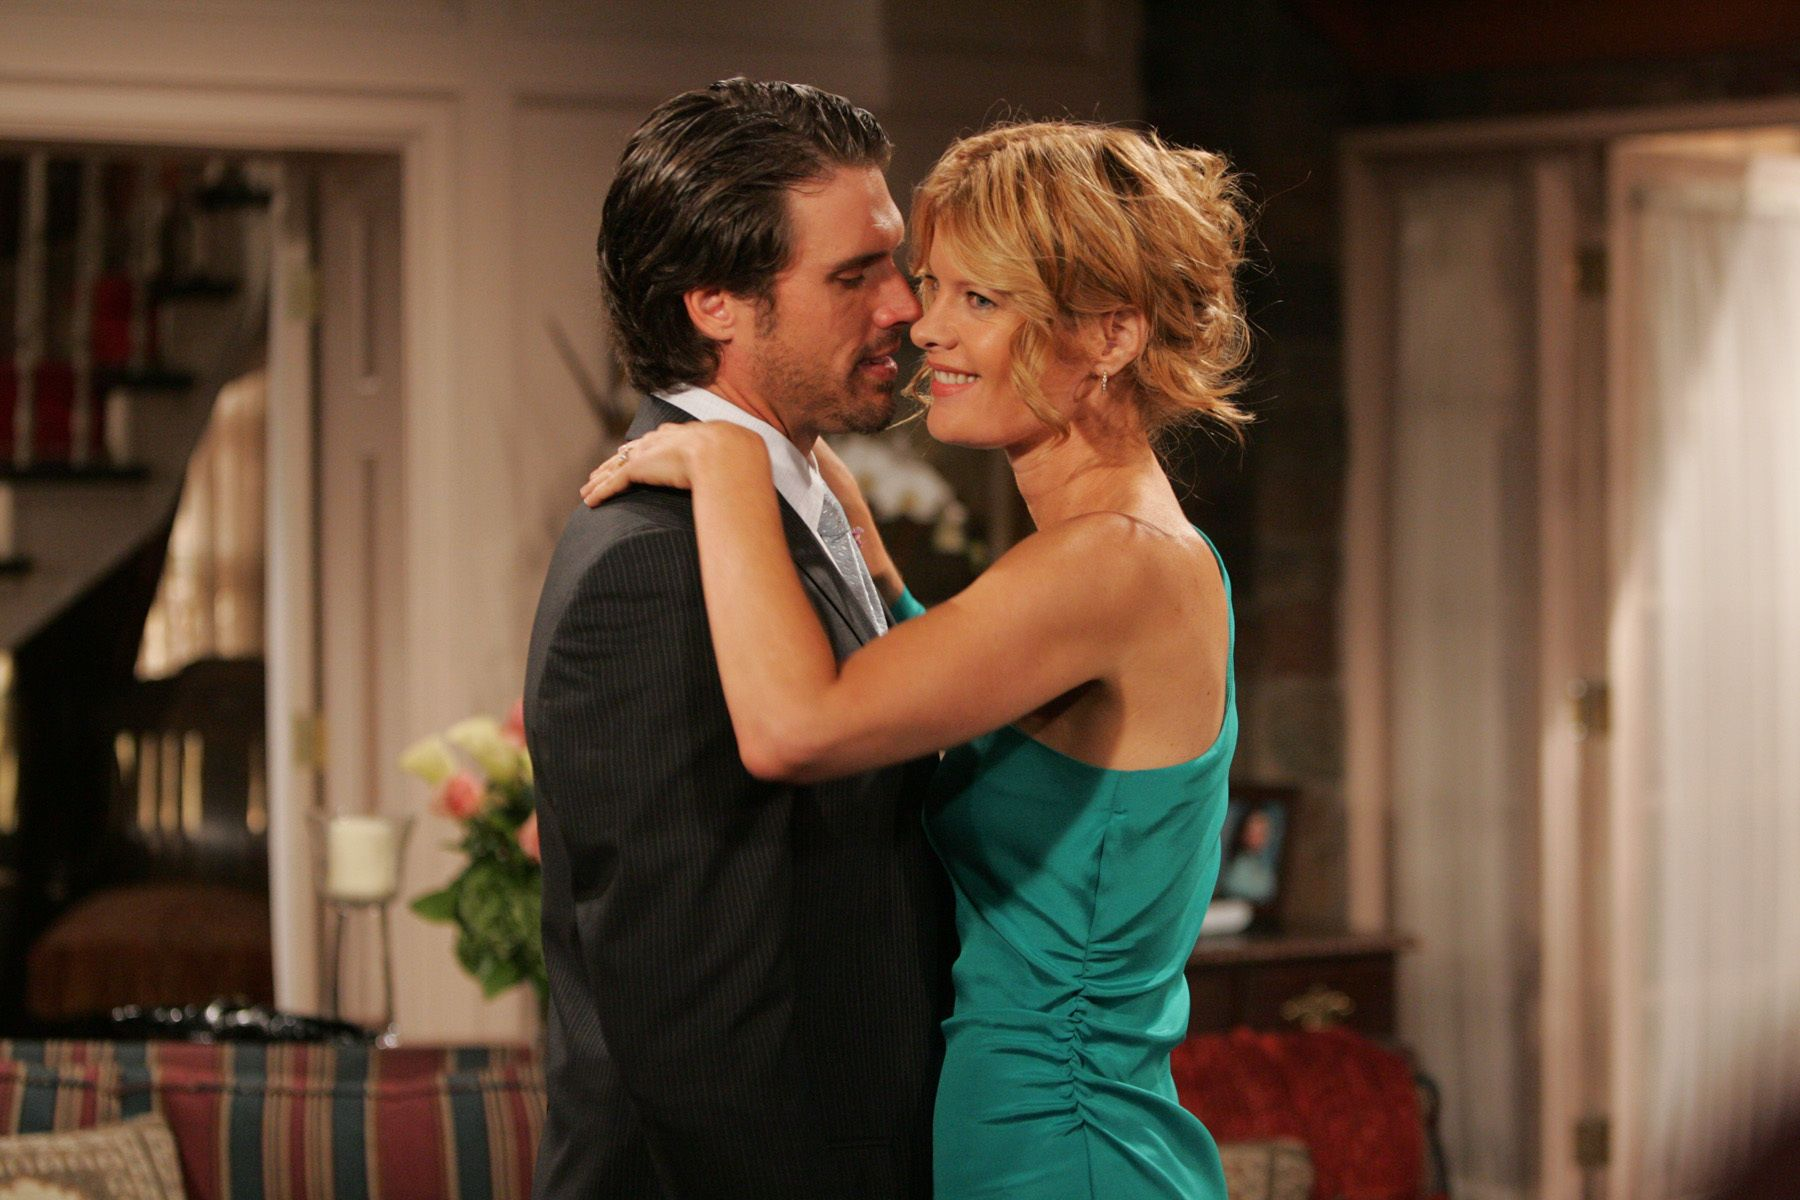 Michelle Stafford as Phyllis embraces Joshua Morrow as Nick